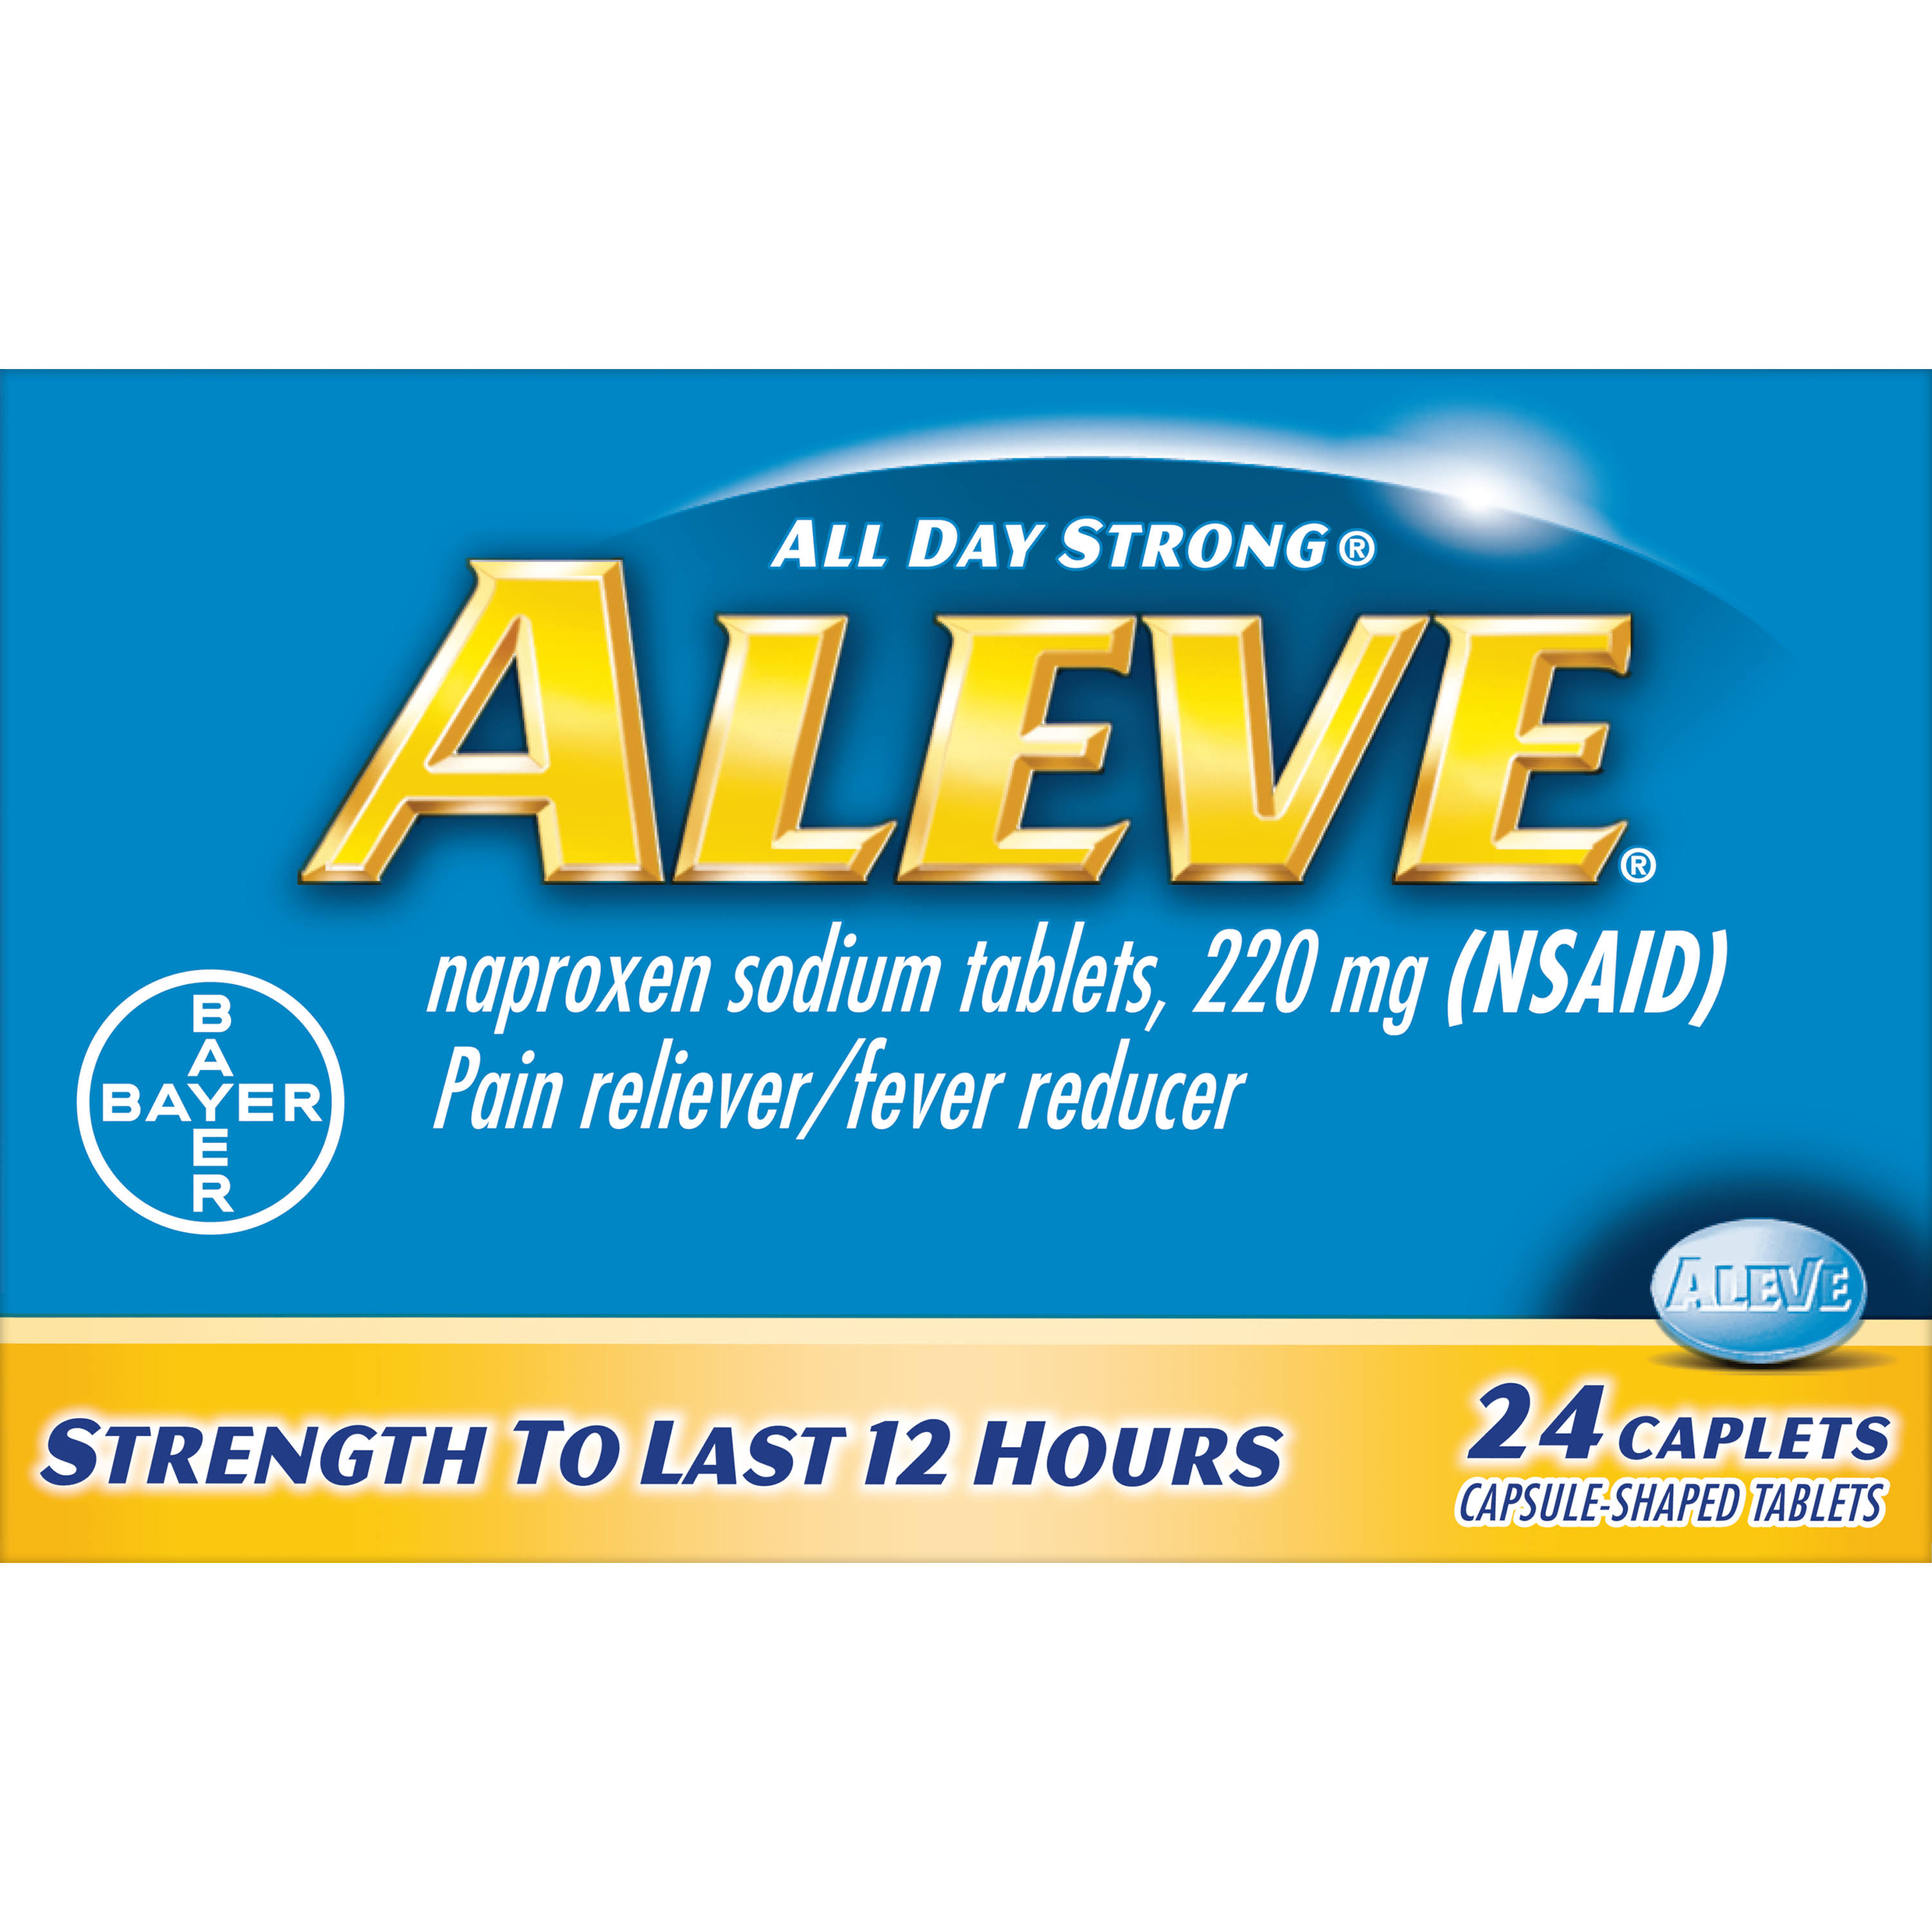 Bayer Aleve All Day Strong Pain Reliever - 24 Caplets